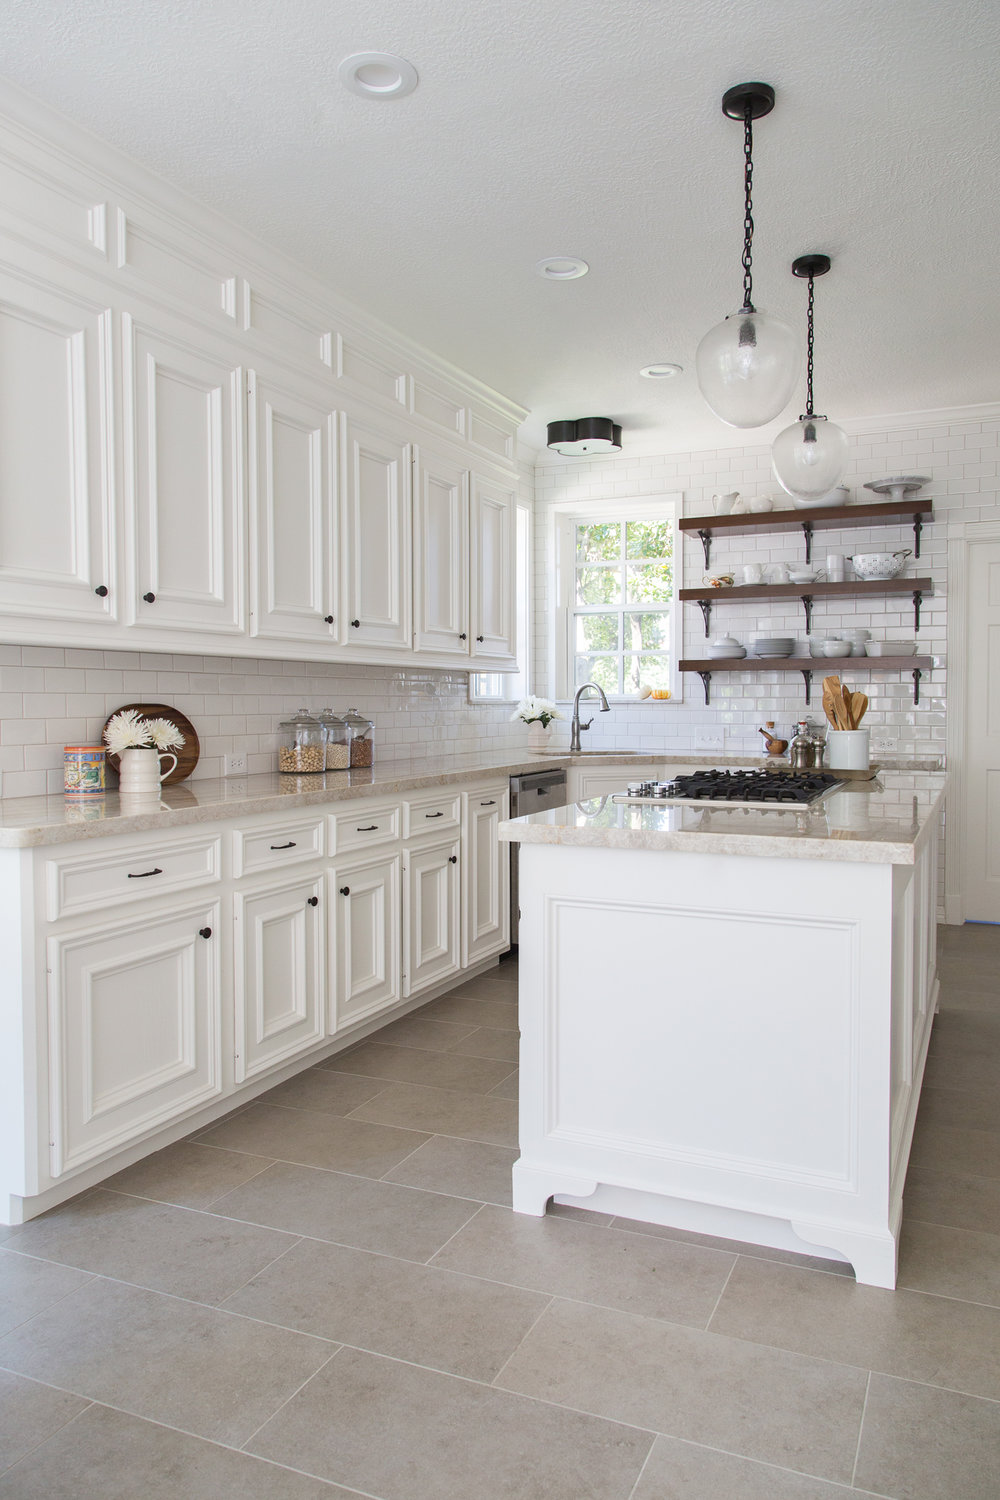 White kitchen remodel with open wood shelves - Designer: Carla Aston, Photographer: Tori Aston #whitekitchen #openshelving #quartzitecountertops